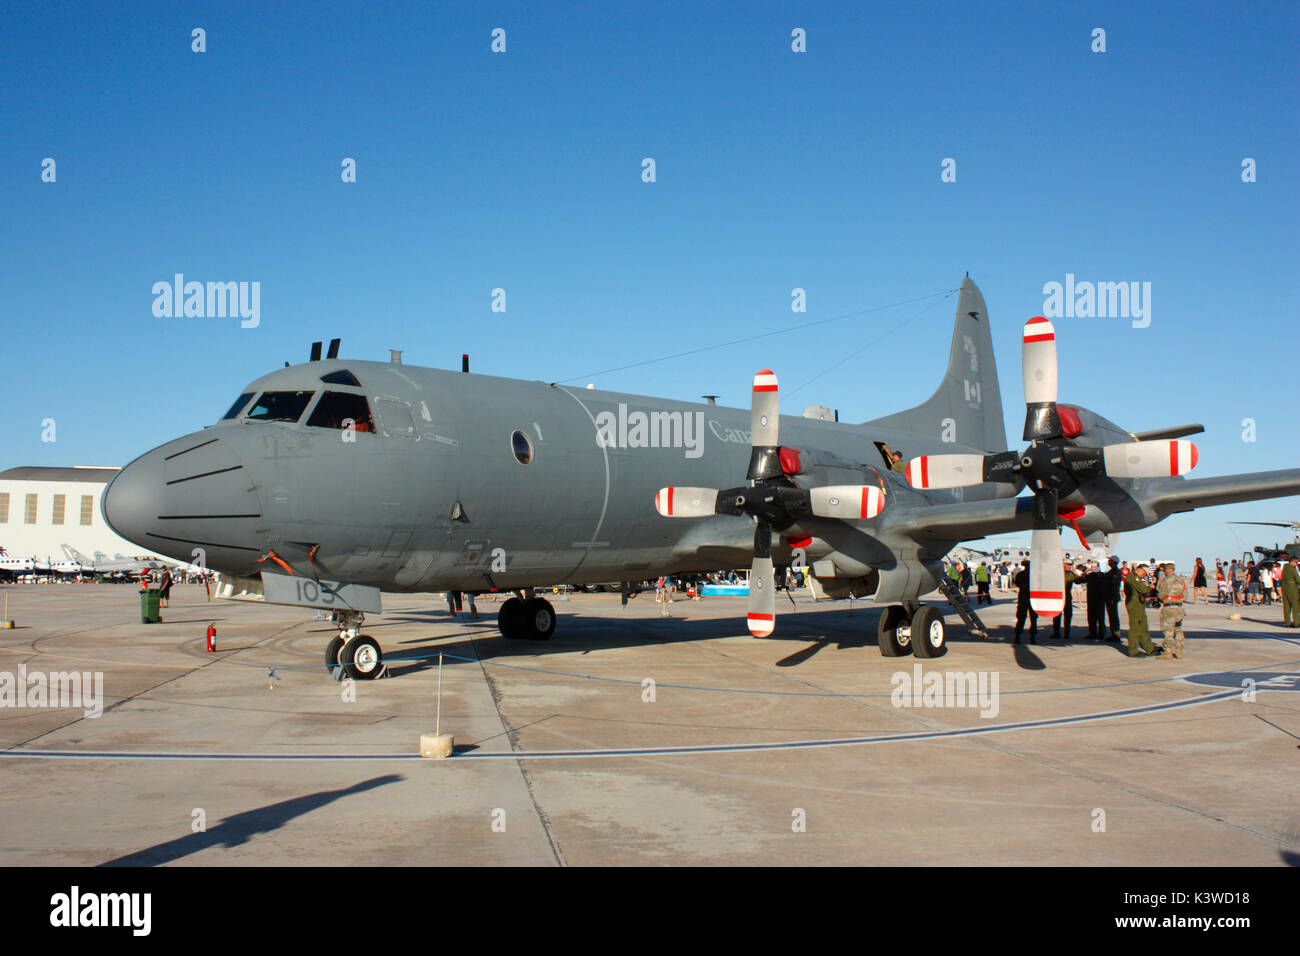 Royal Canadian Air Force Lockheed CP-140 Aurora maritime patrol aircraft (a derivative of the P-3 Orion) - Stock Image